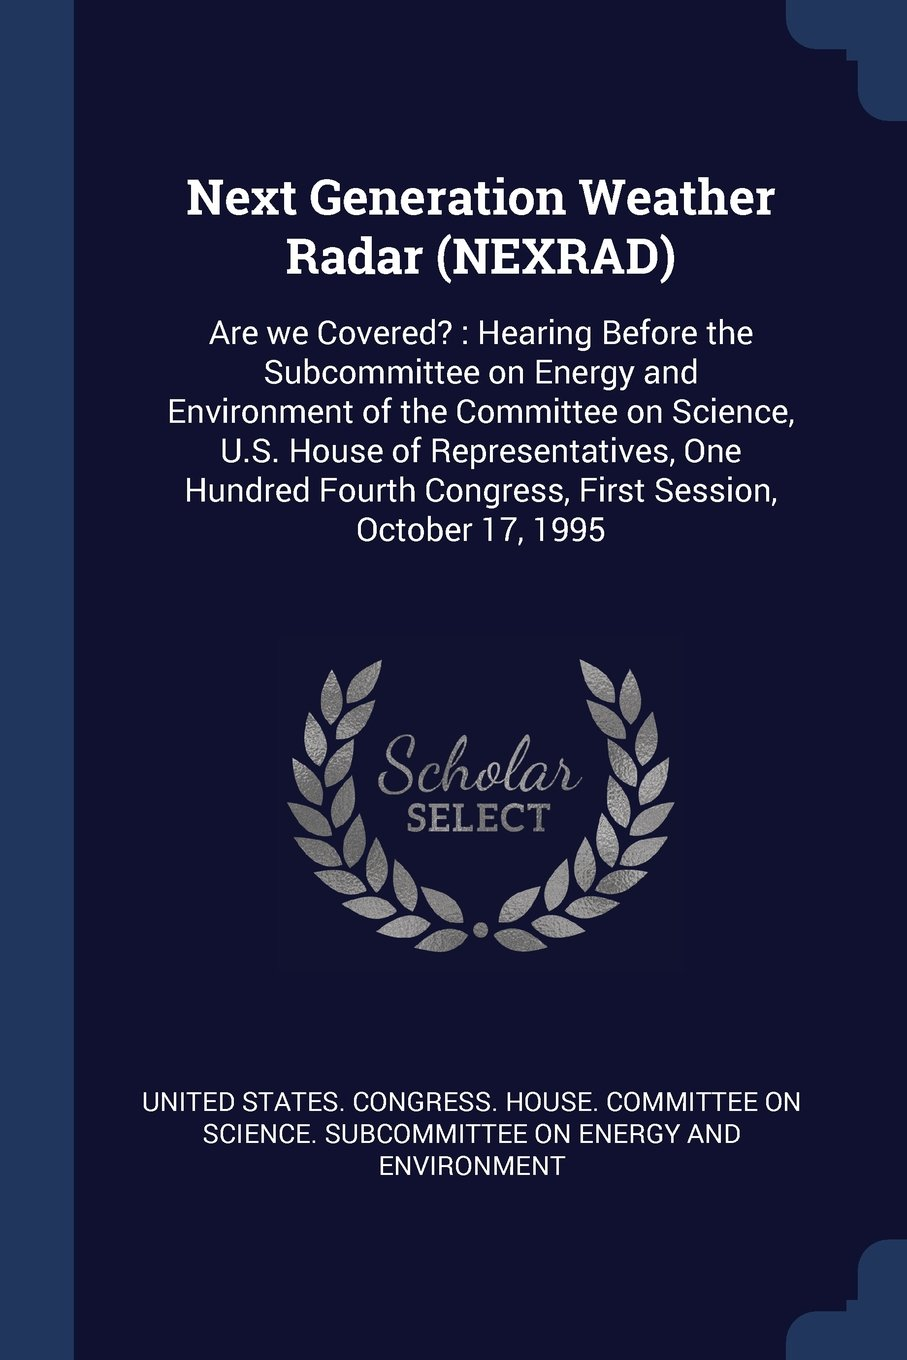 Download Next Generation Weather Radar (NEXRAD): Are we Covered? : Hearing Before the Subcommittee on Energy and Environment of the Committee on Science, U.S. ... Congress, First Session, October 17, 1995 ebook